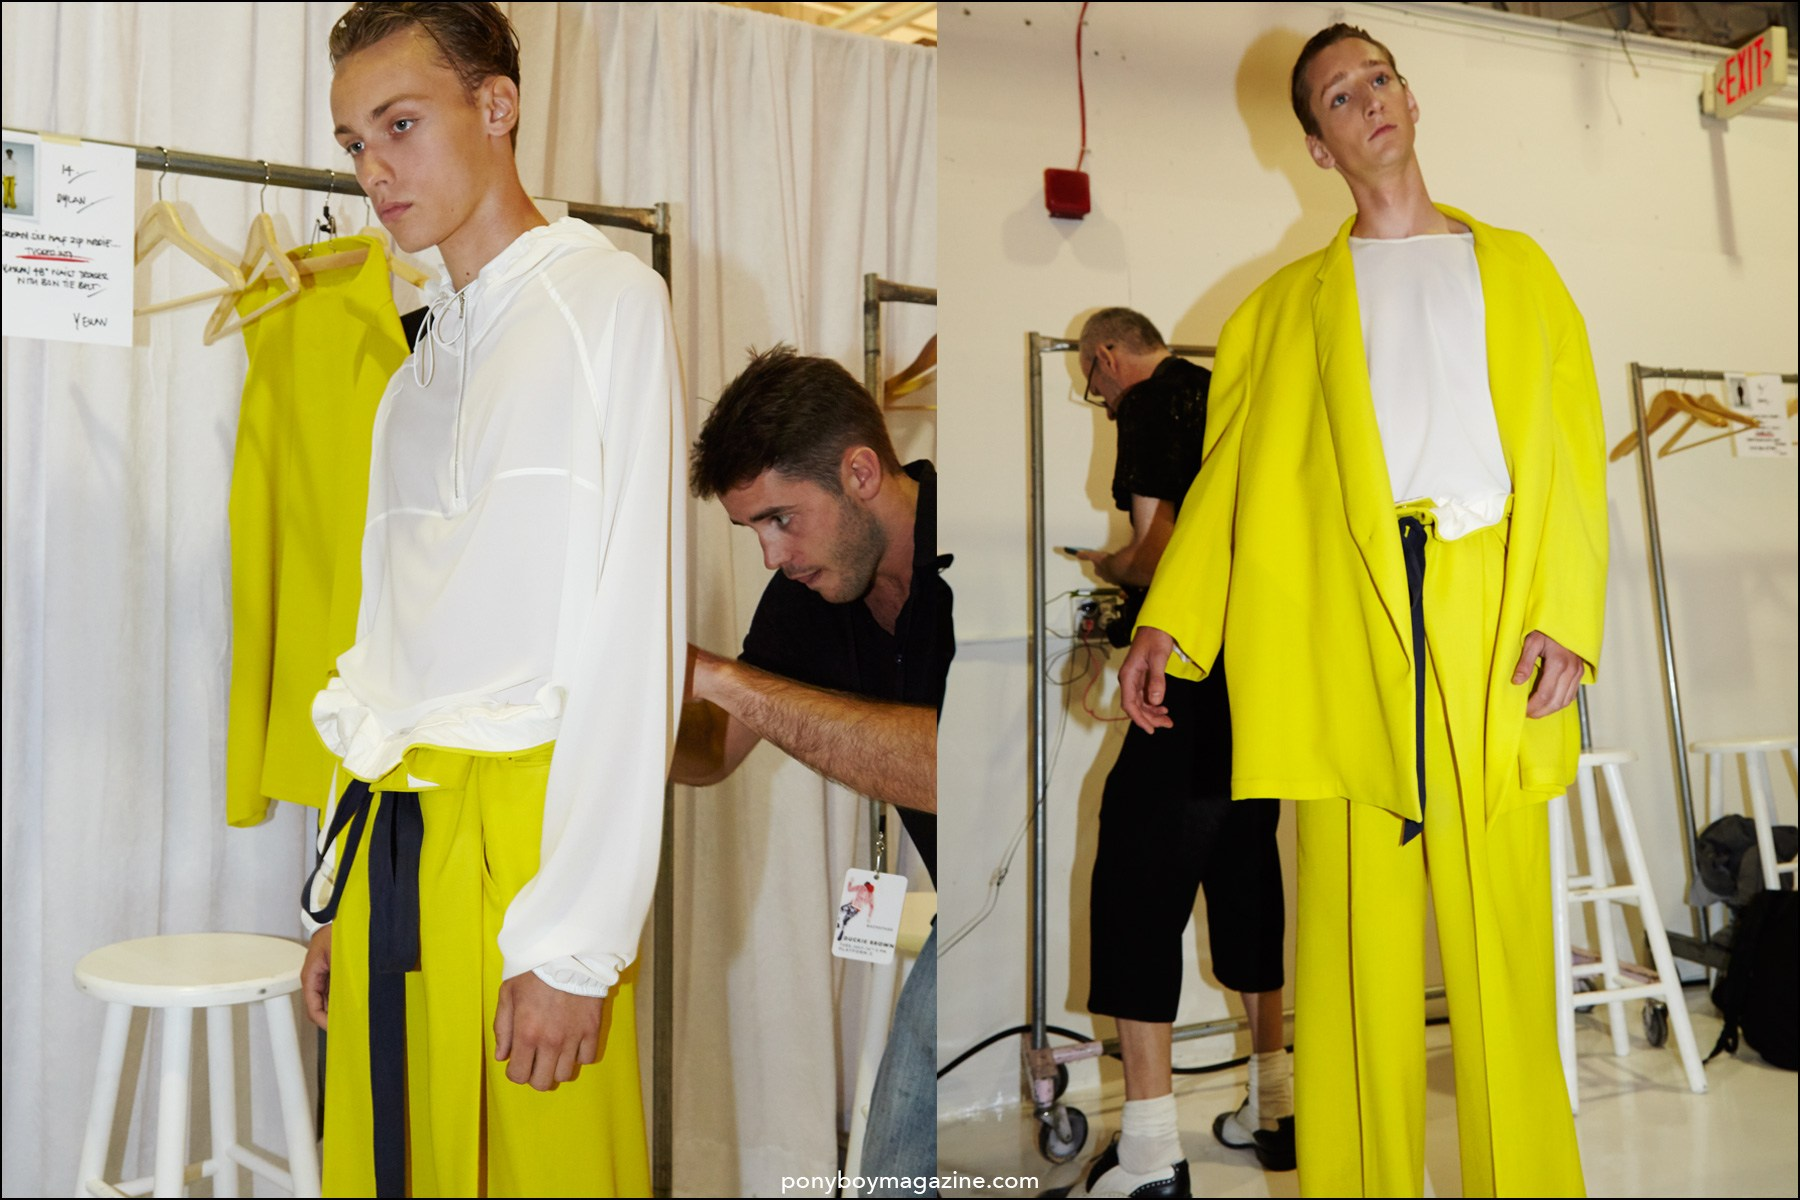 Model Tom Gaskin wears an electric yellow oversized suit, backstage at Duckie Brown Spring/Summer 2016 menswear show. Photography by Alexander Thompson for Ponyboy magazine NY.